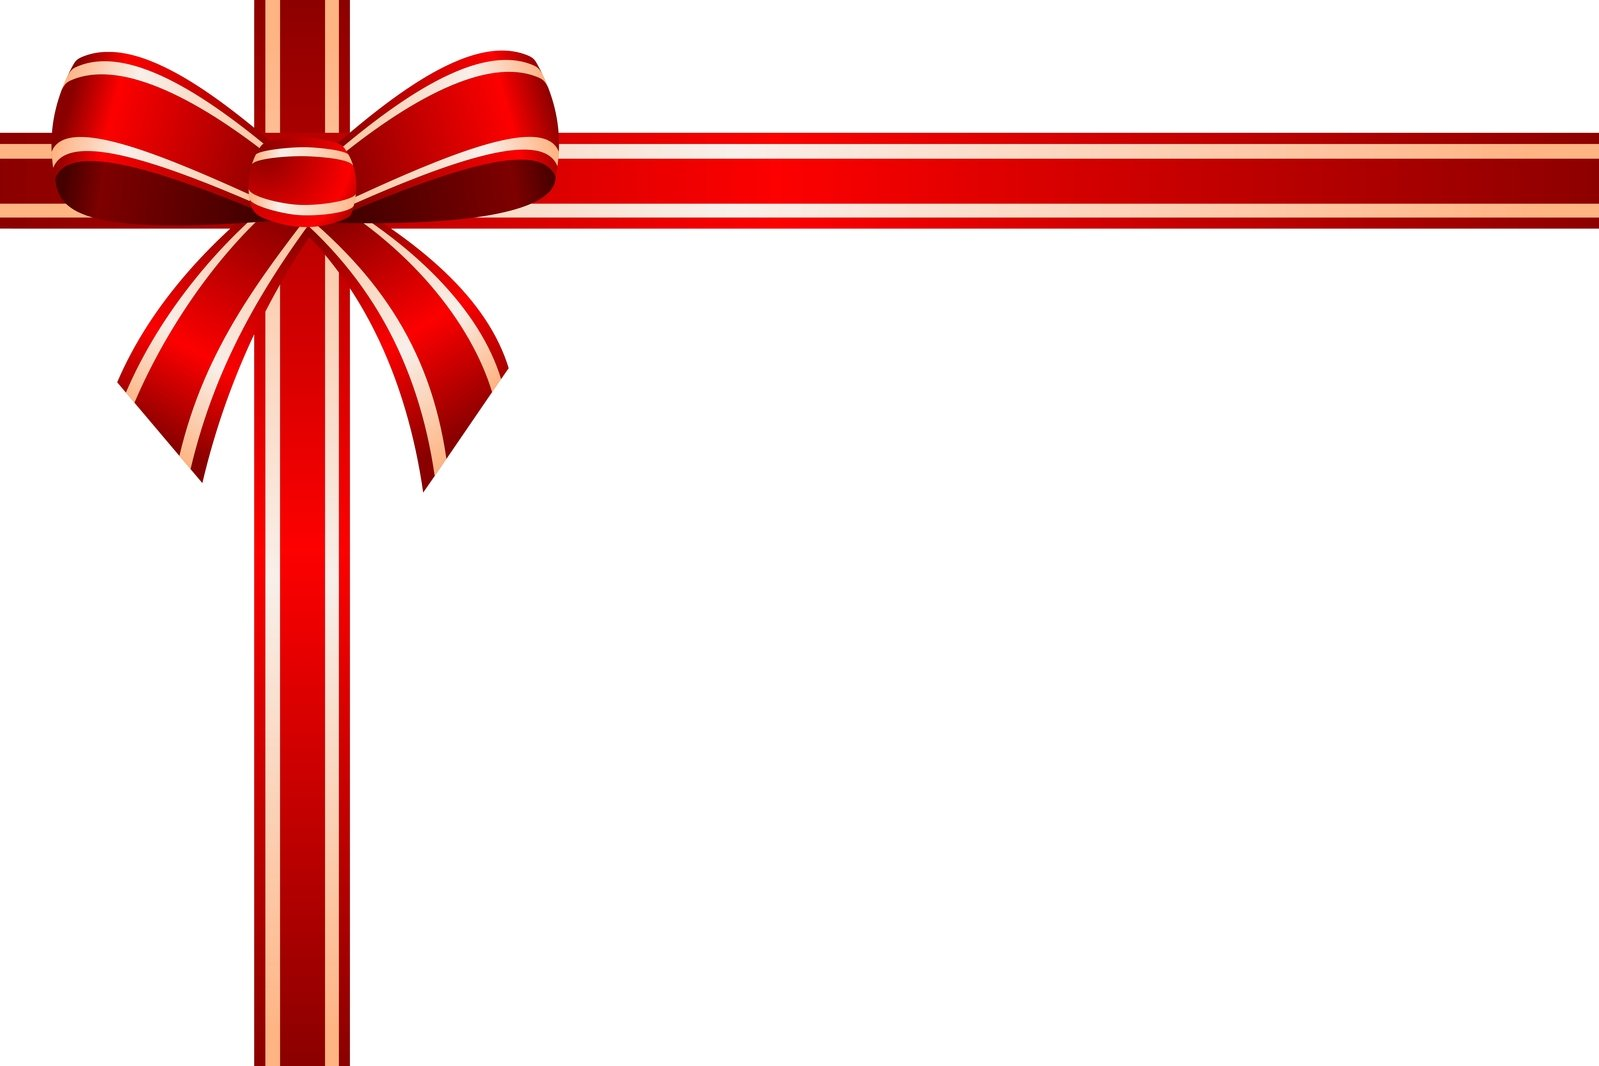 Free Red Ribbon & Bow 2 Stock Photo - FreeImages.com